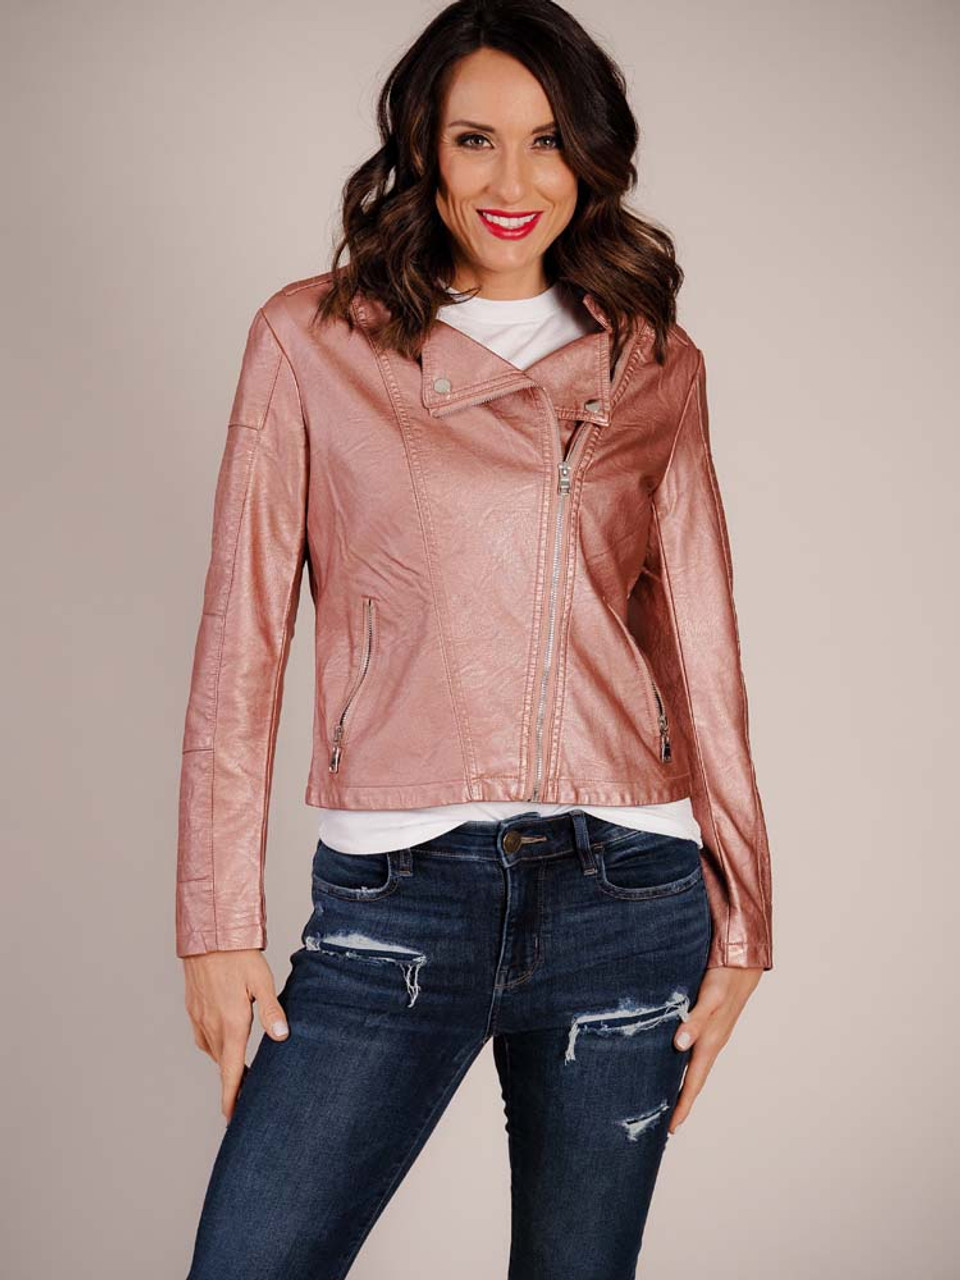 Woven Jacket in Pink Rose